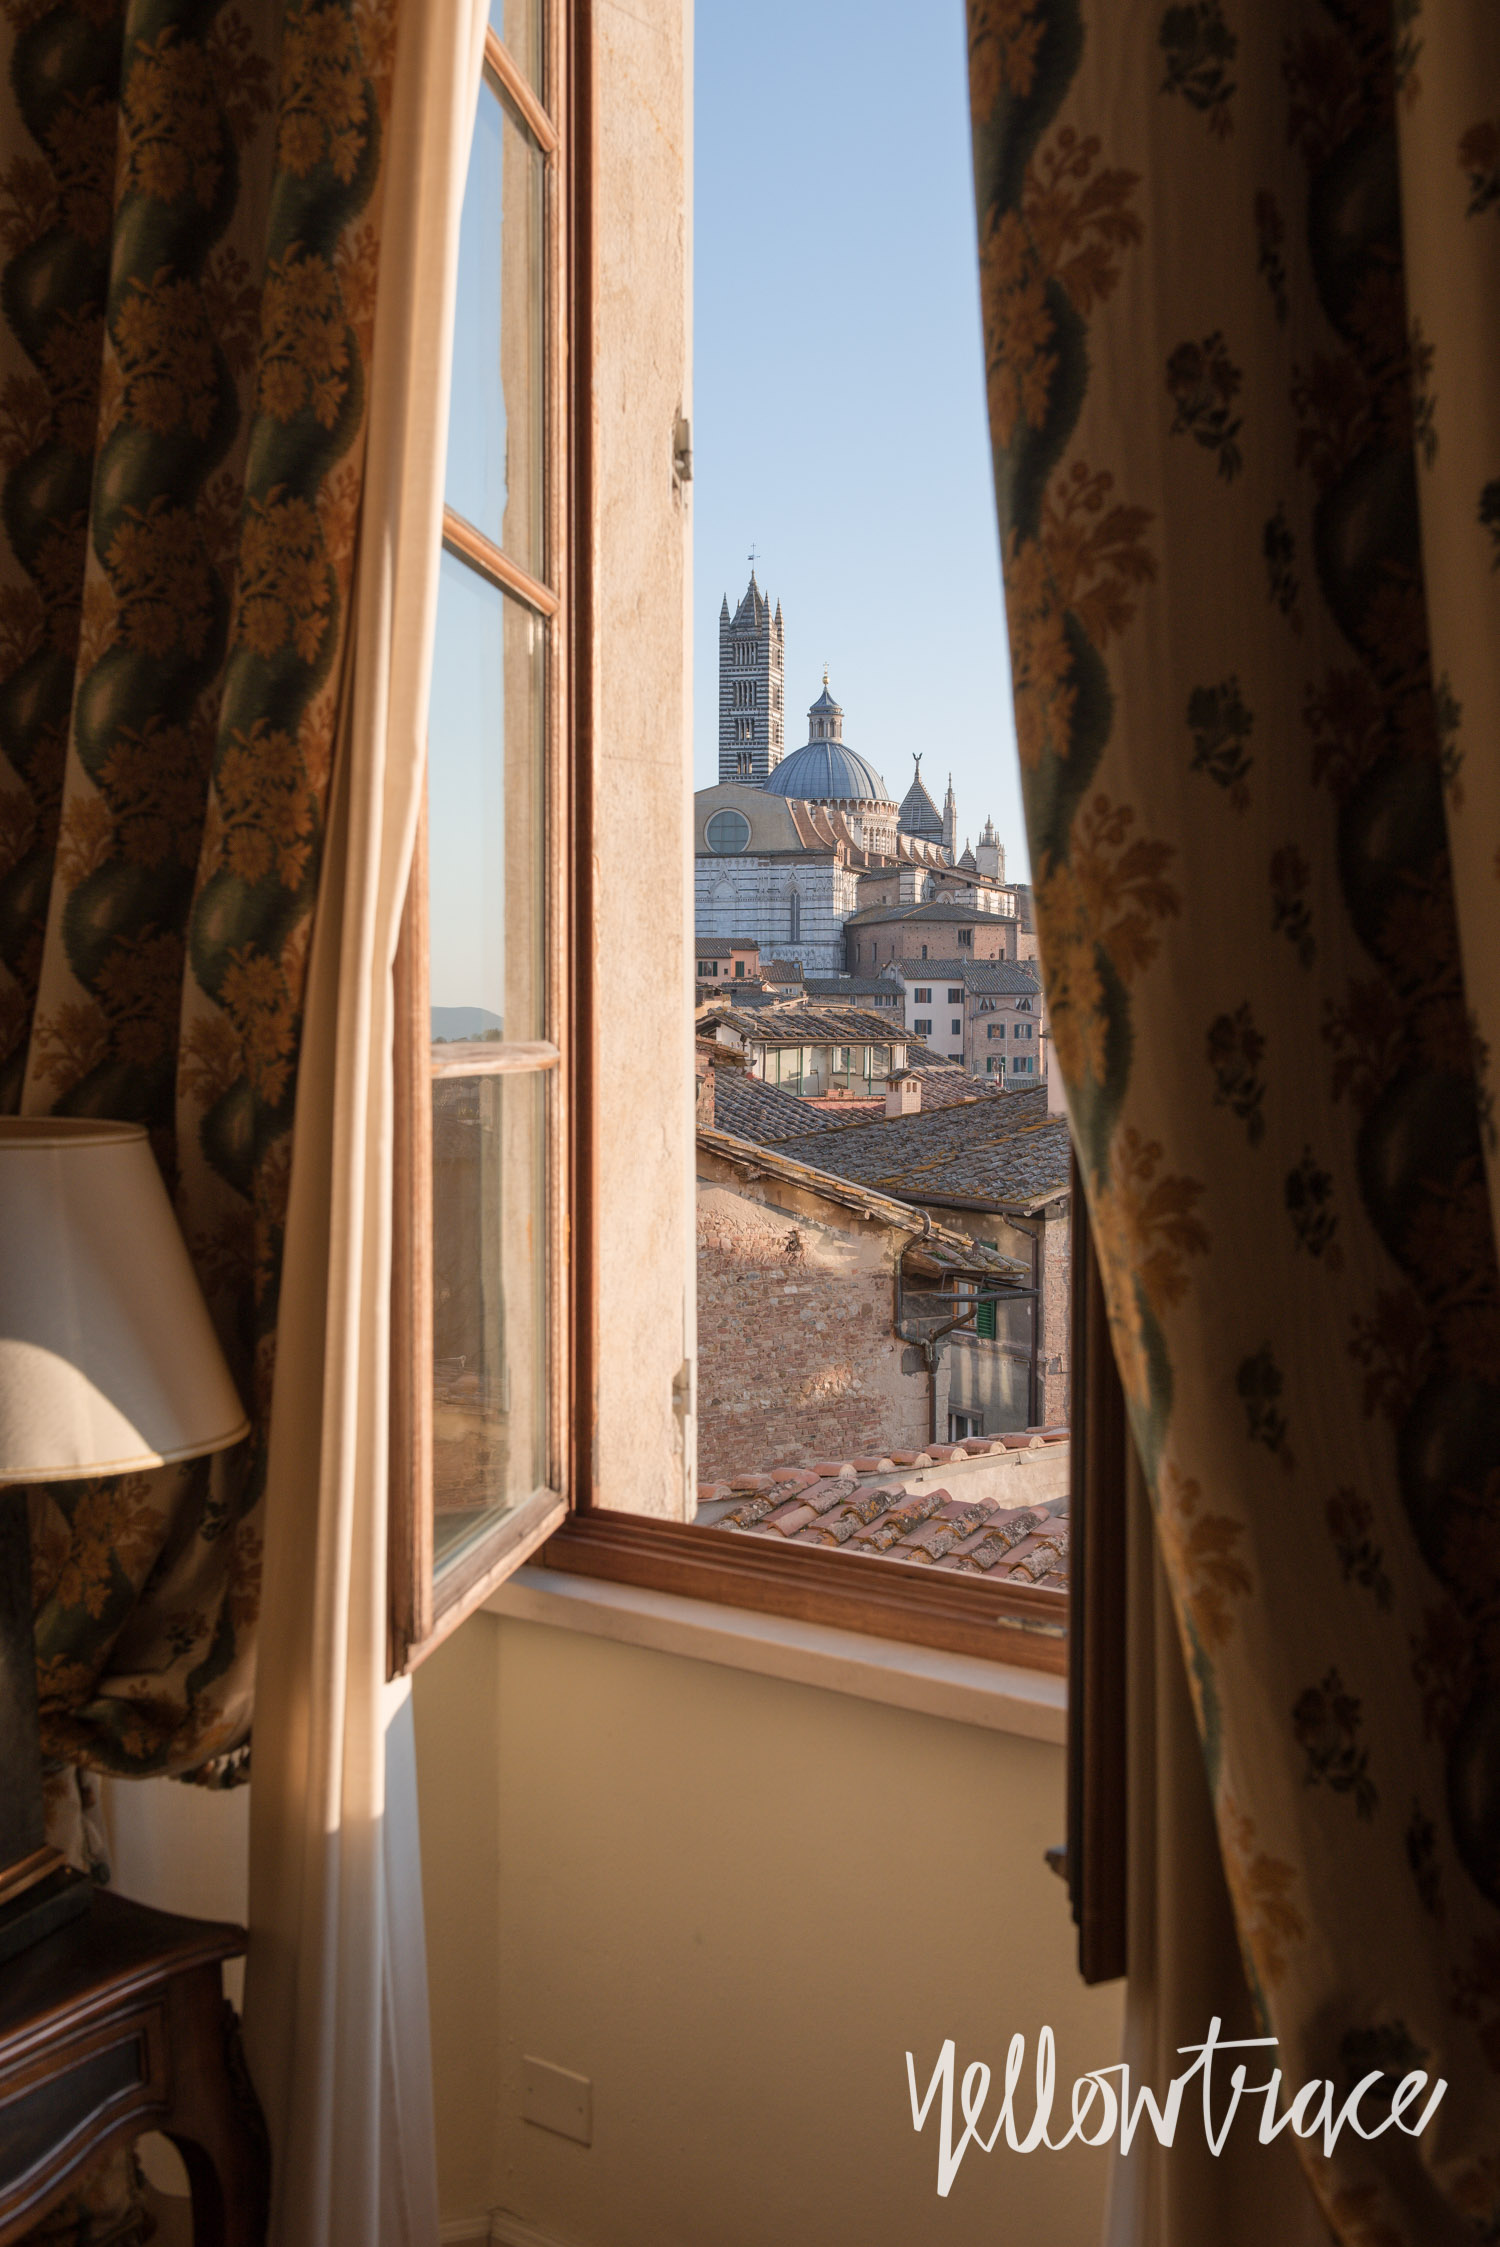 #YellowtraceTravels: Postcards From Siena Italy. Photo by Nick Hughes | Yellowtrace